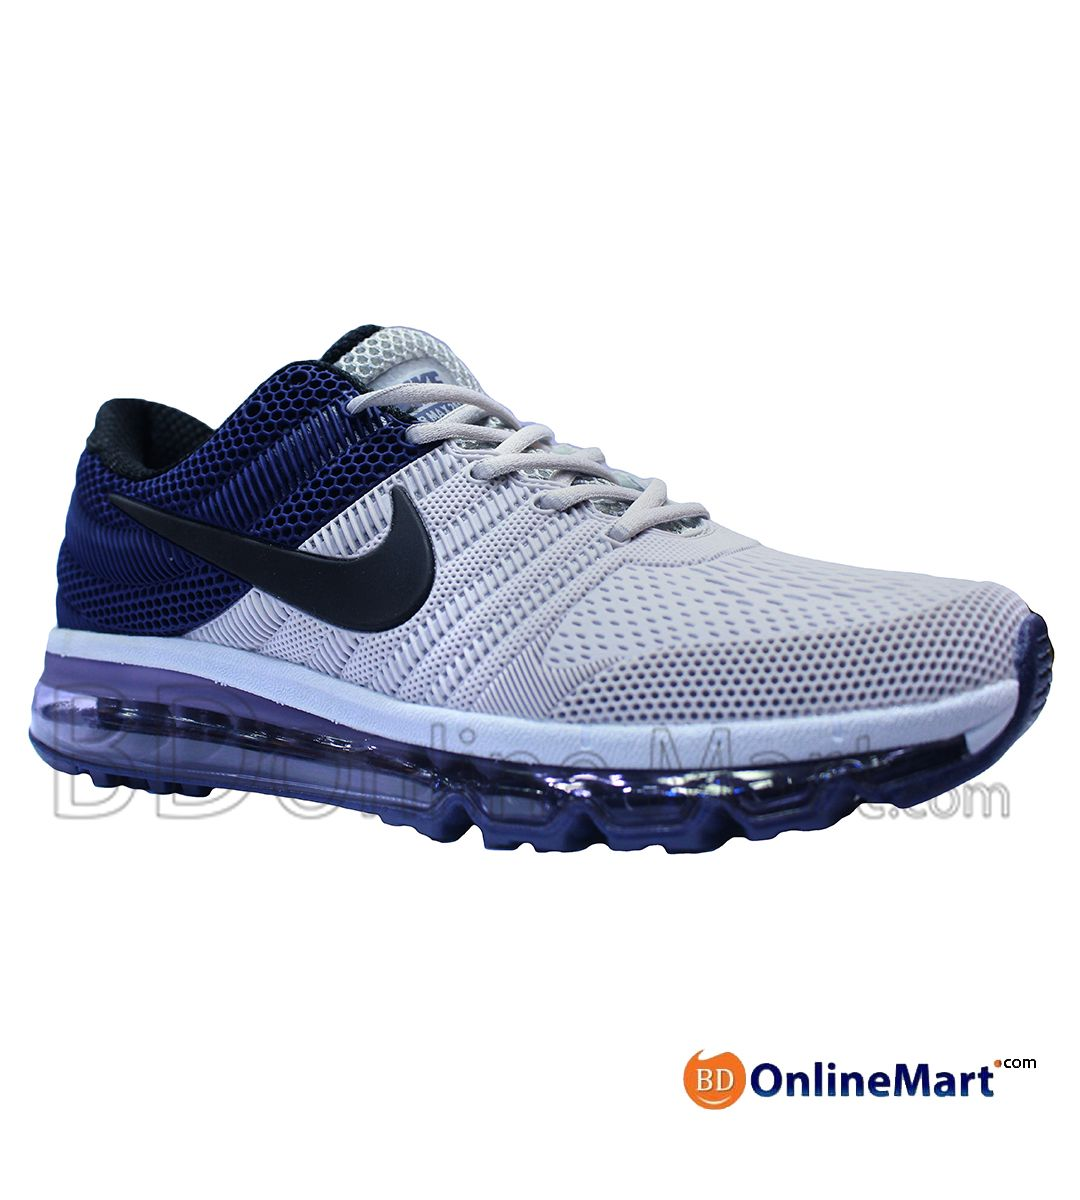 Shoe Outlet Discount Shoes Nike Outlet Shop Today For Discount